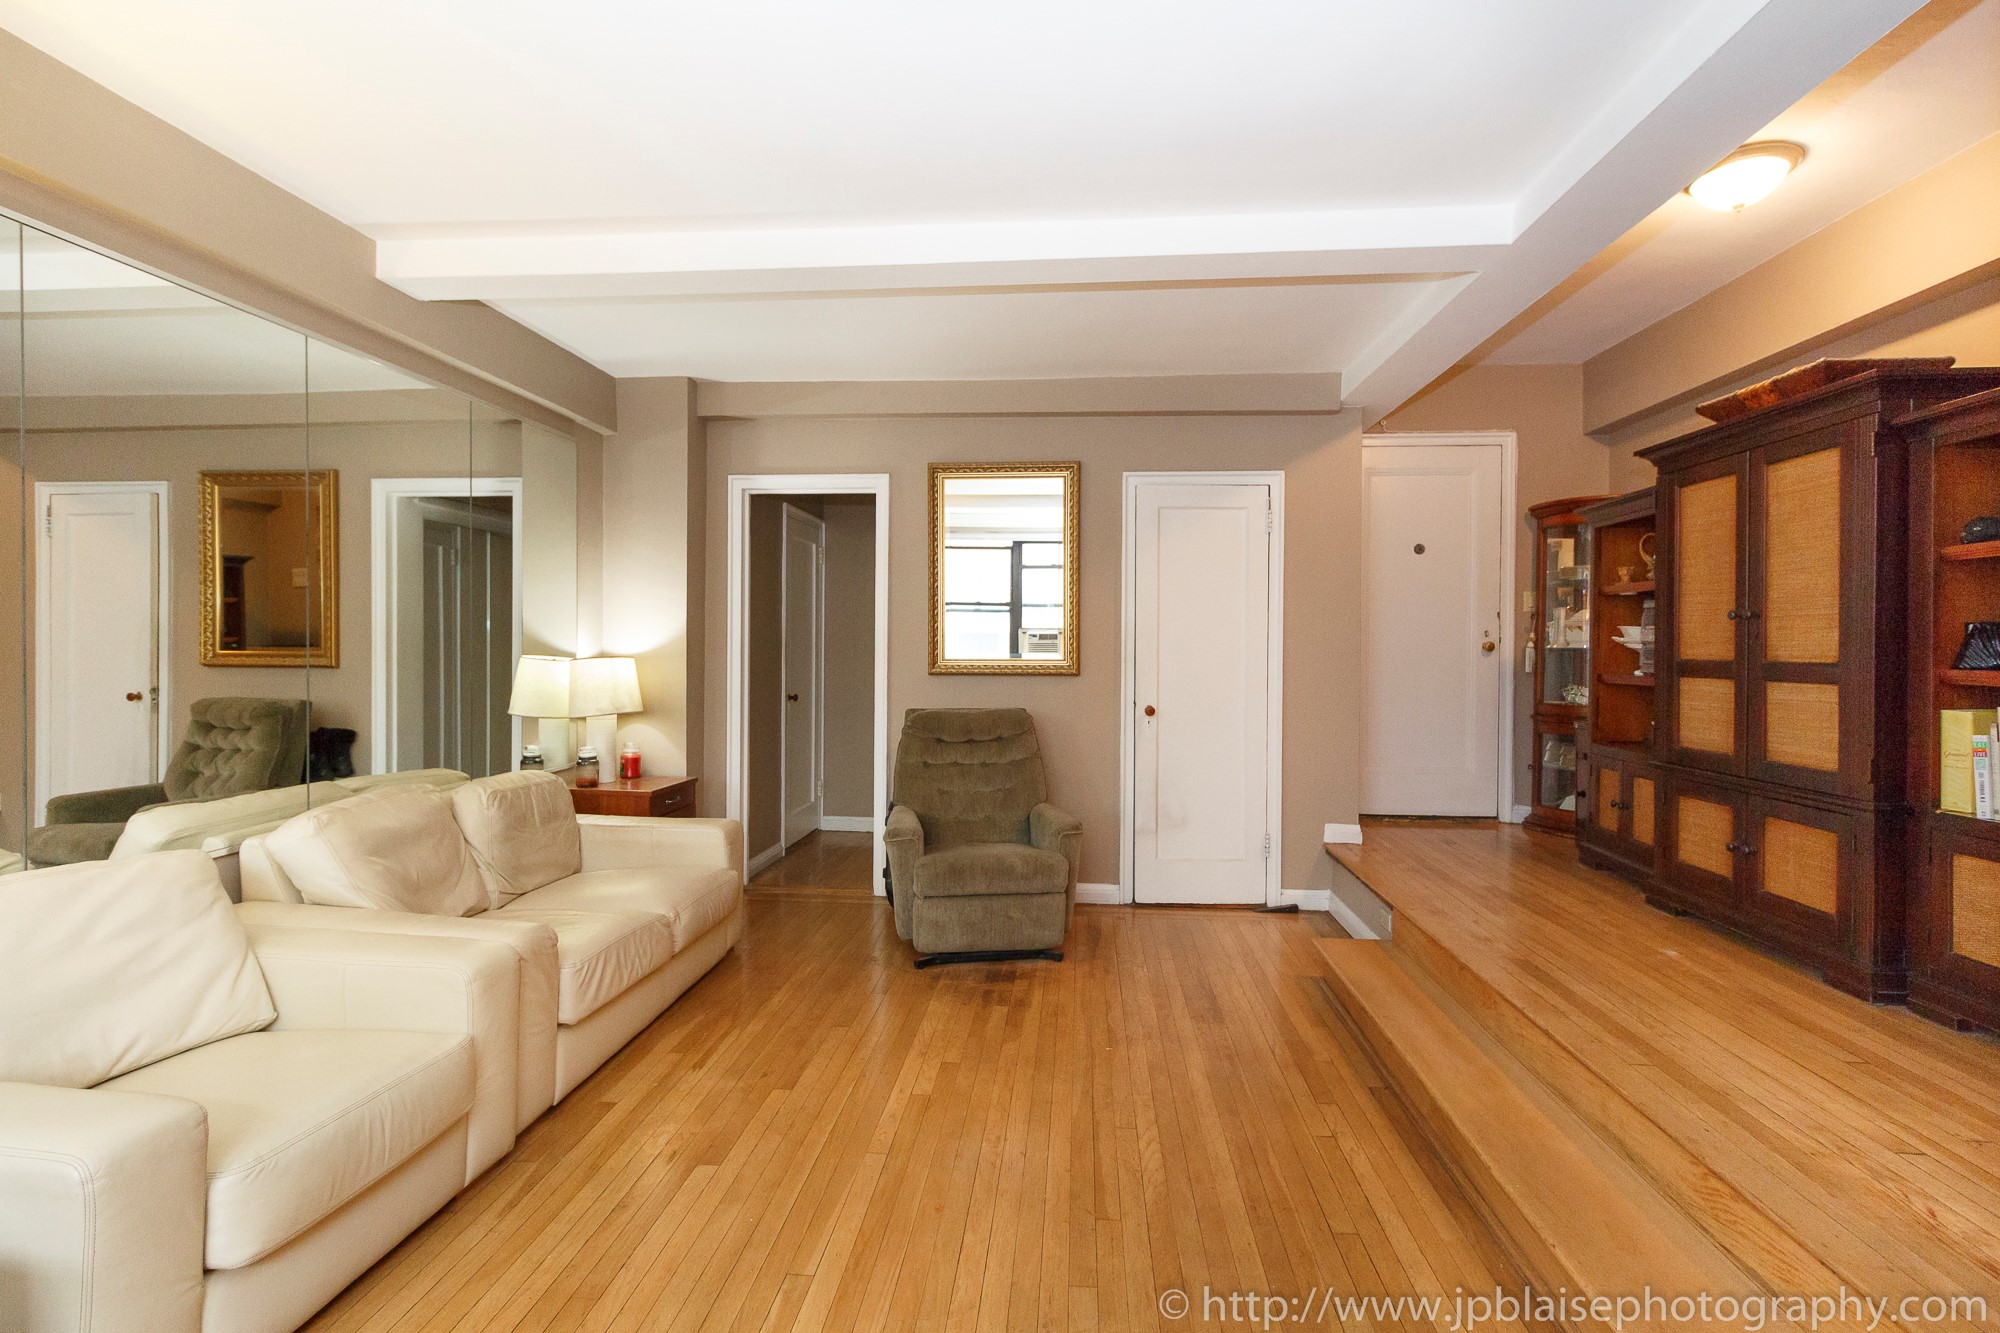 New york apartment photographer alcove studio Chelsea Manhattan real estate living room